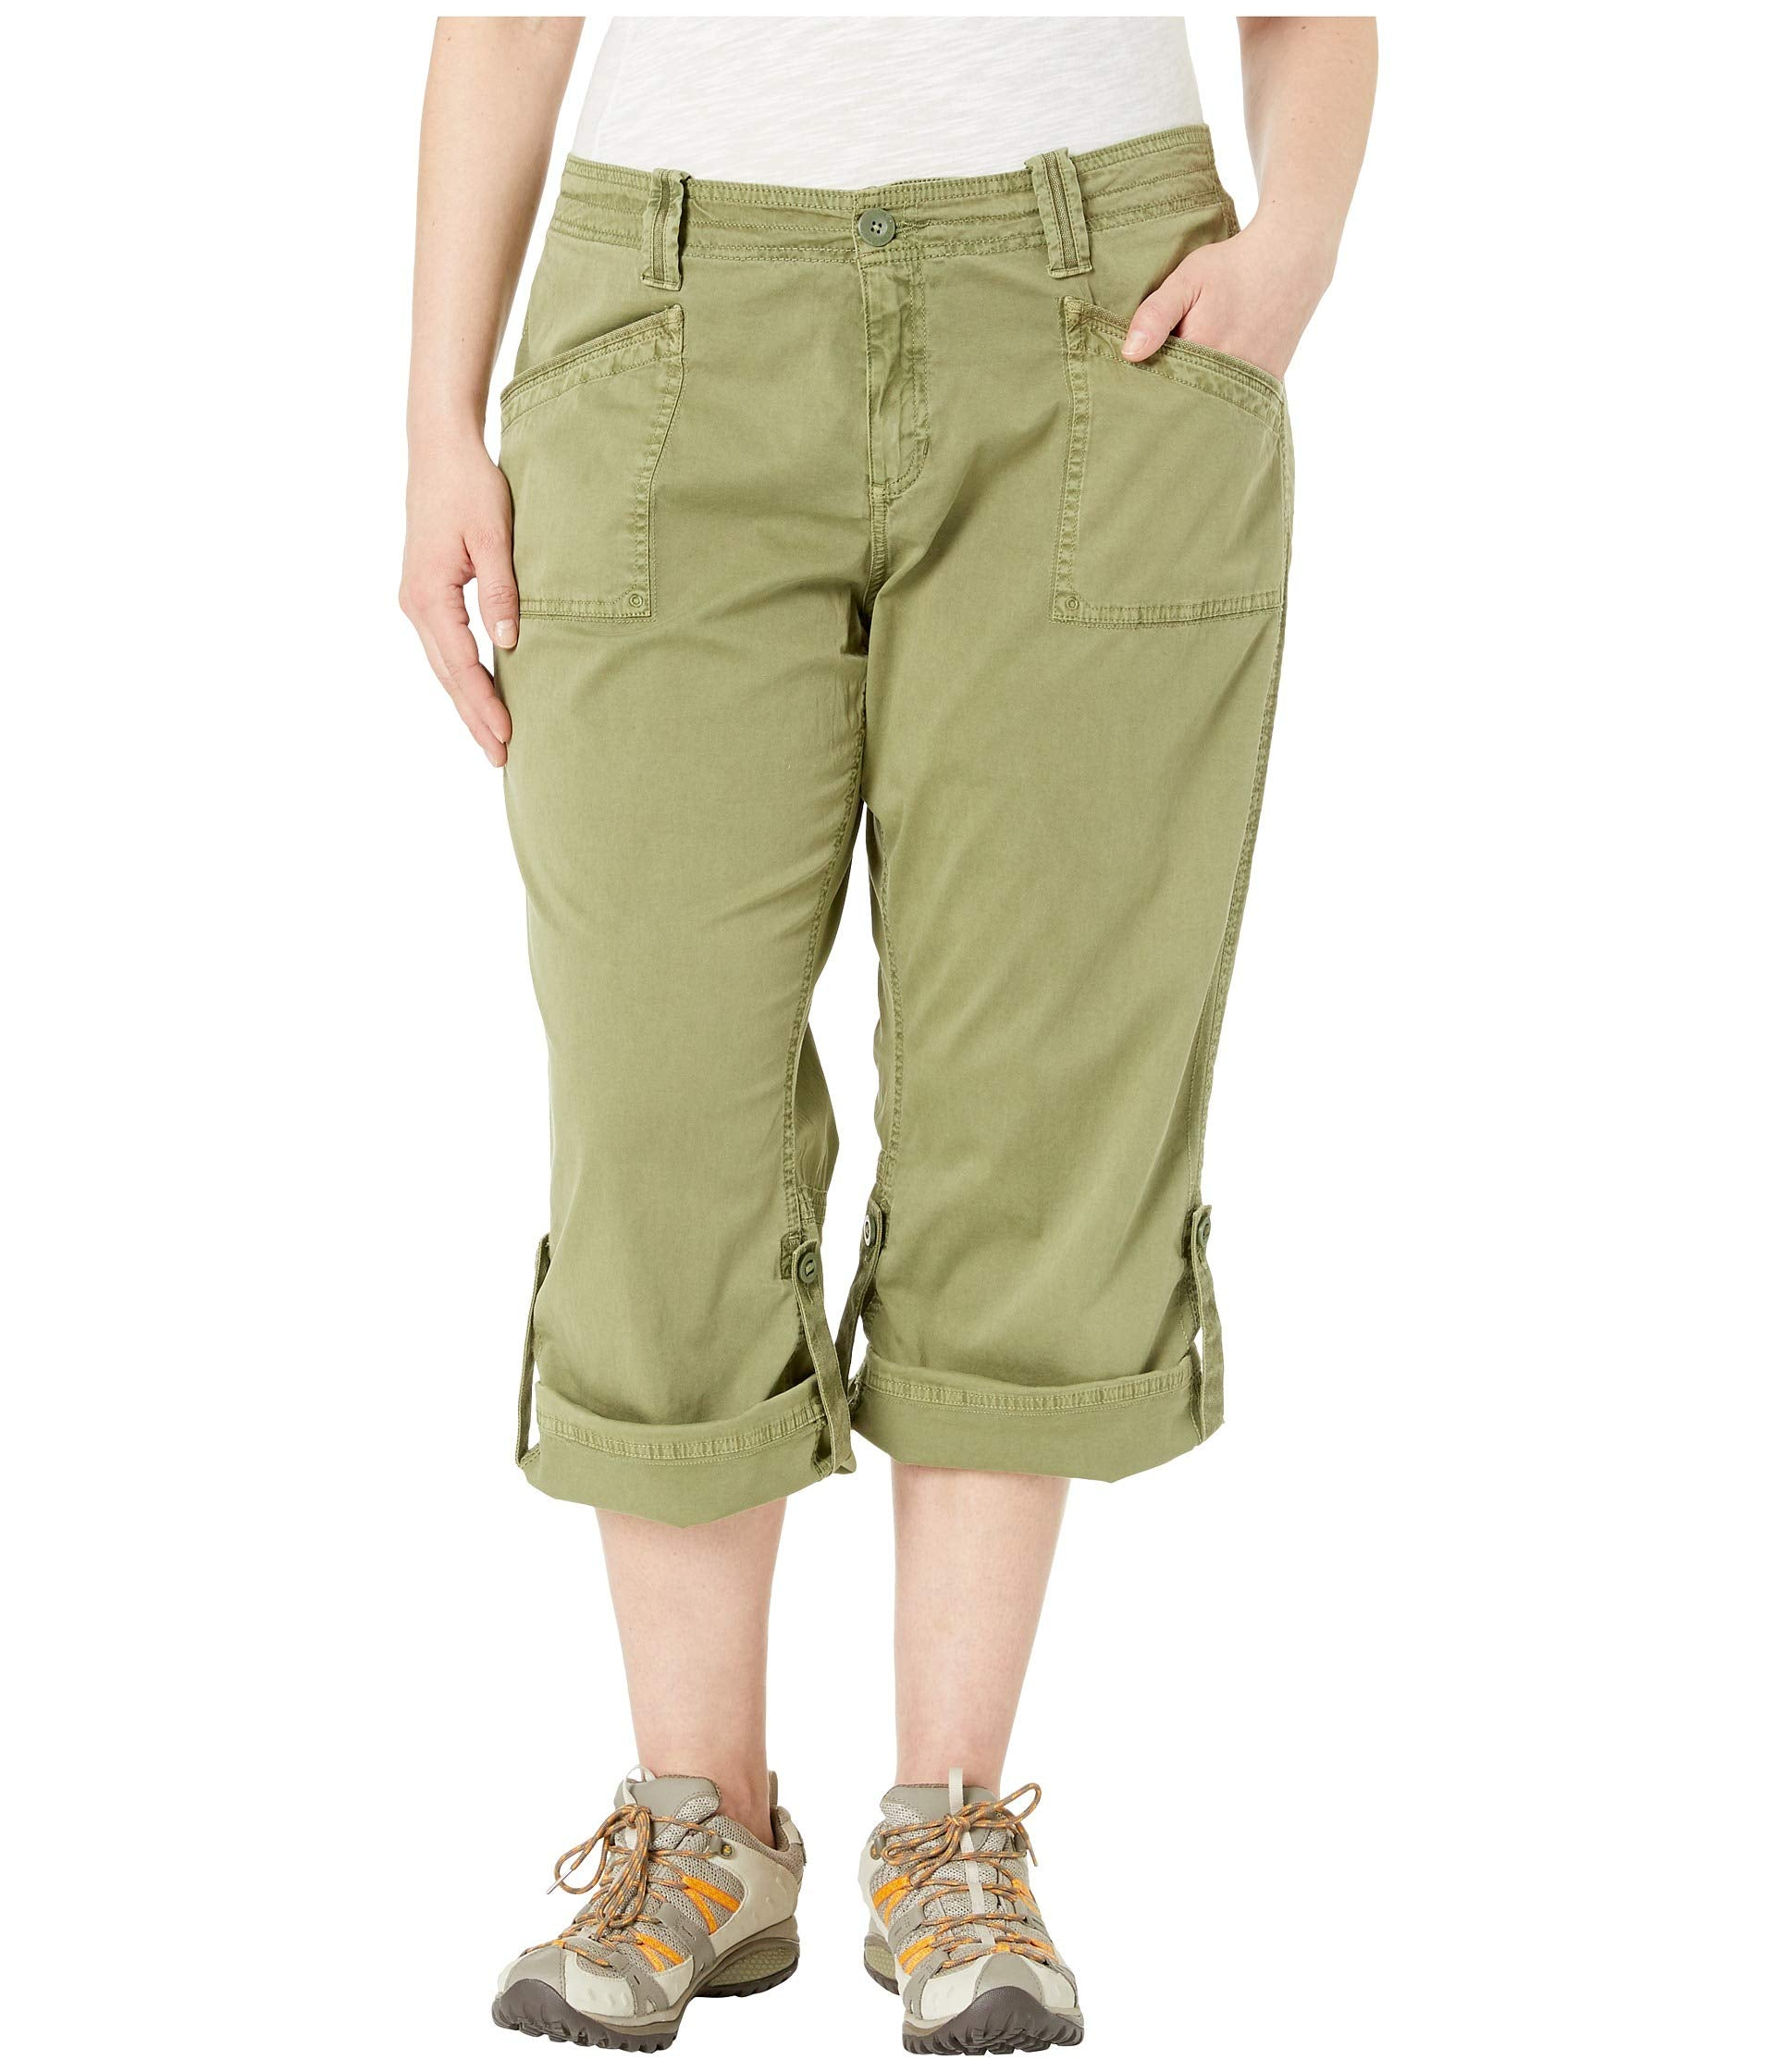 Plus Size Addie V2 Capris